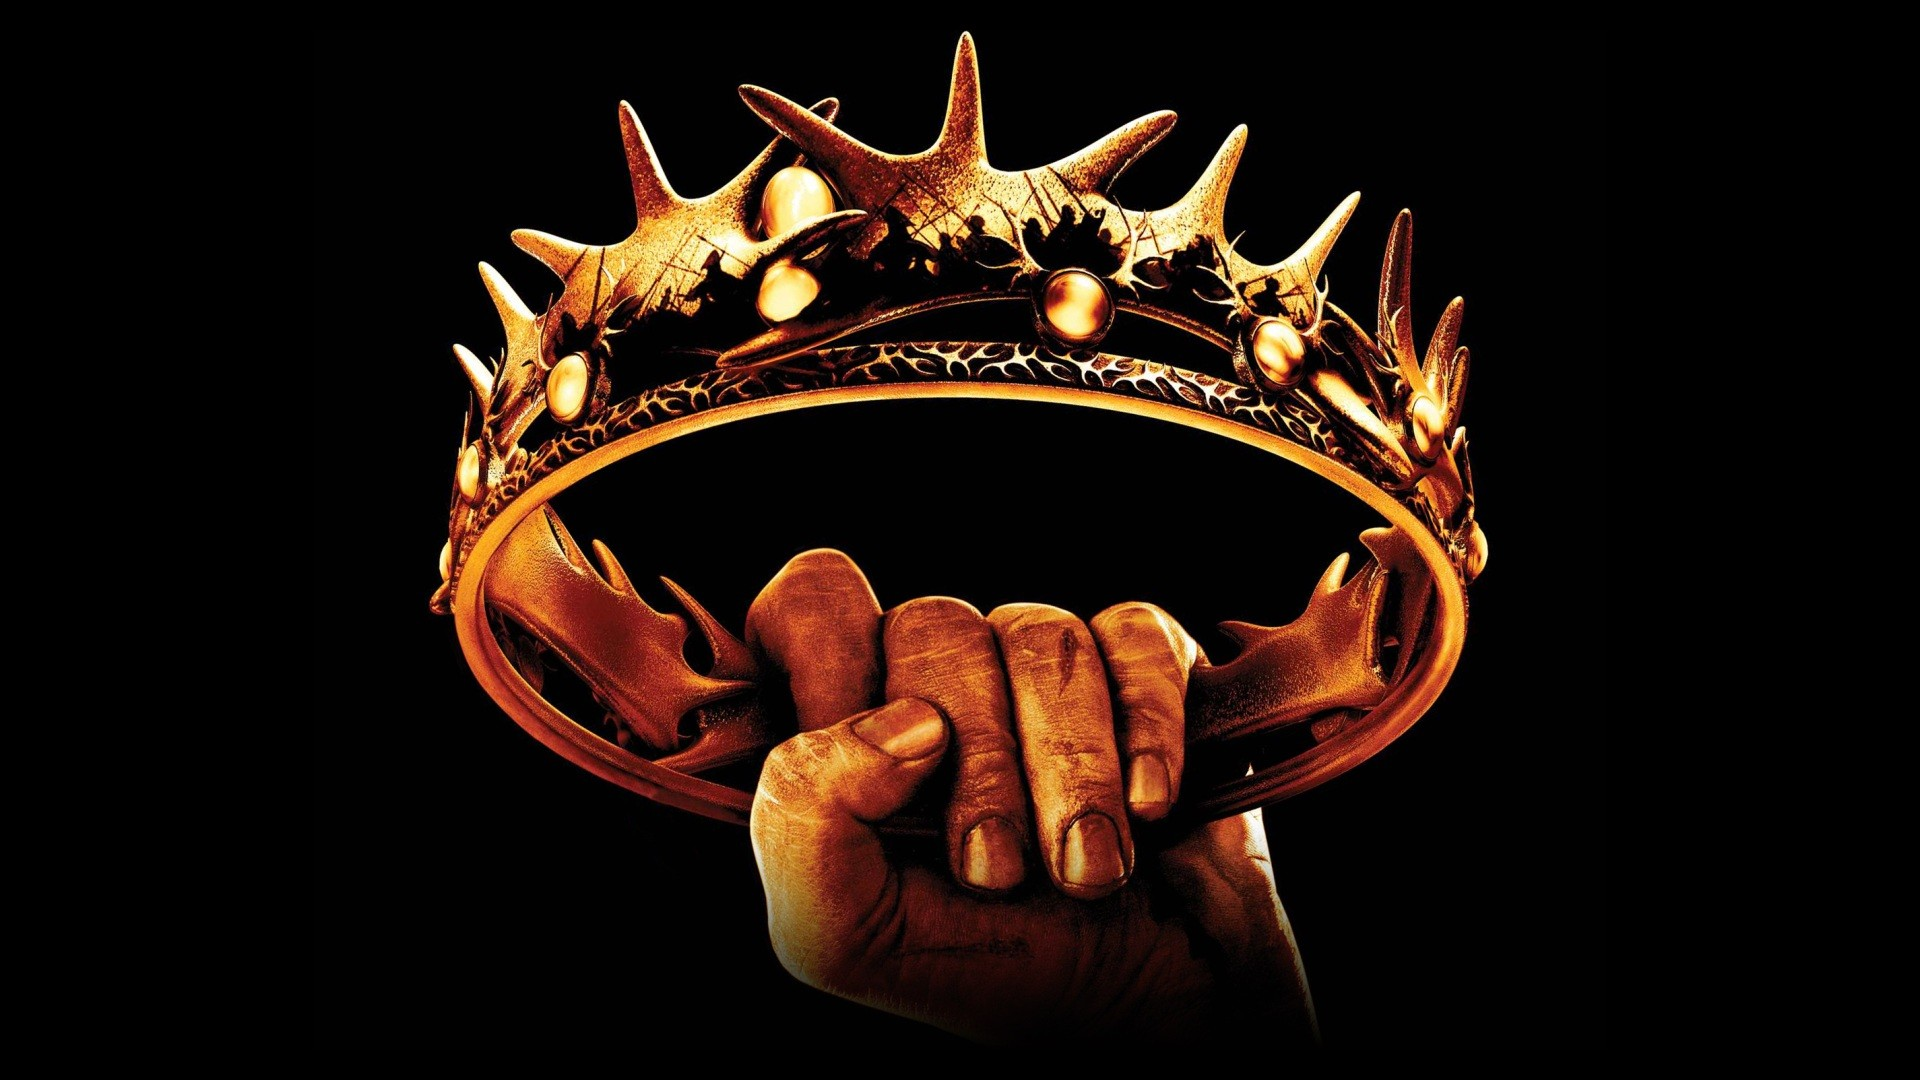 Wallpapers :: hands, gold, Game of Thrones, Kings, crown.